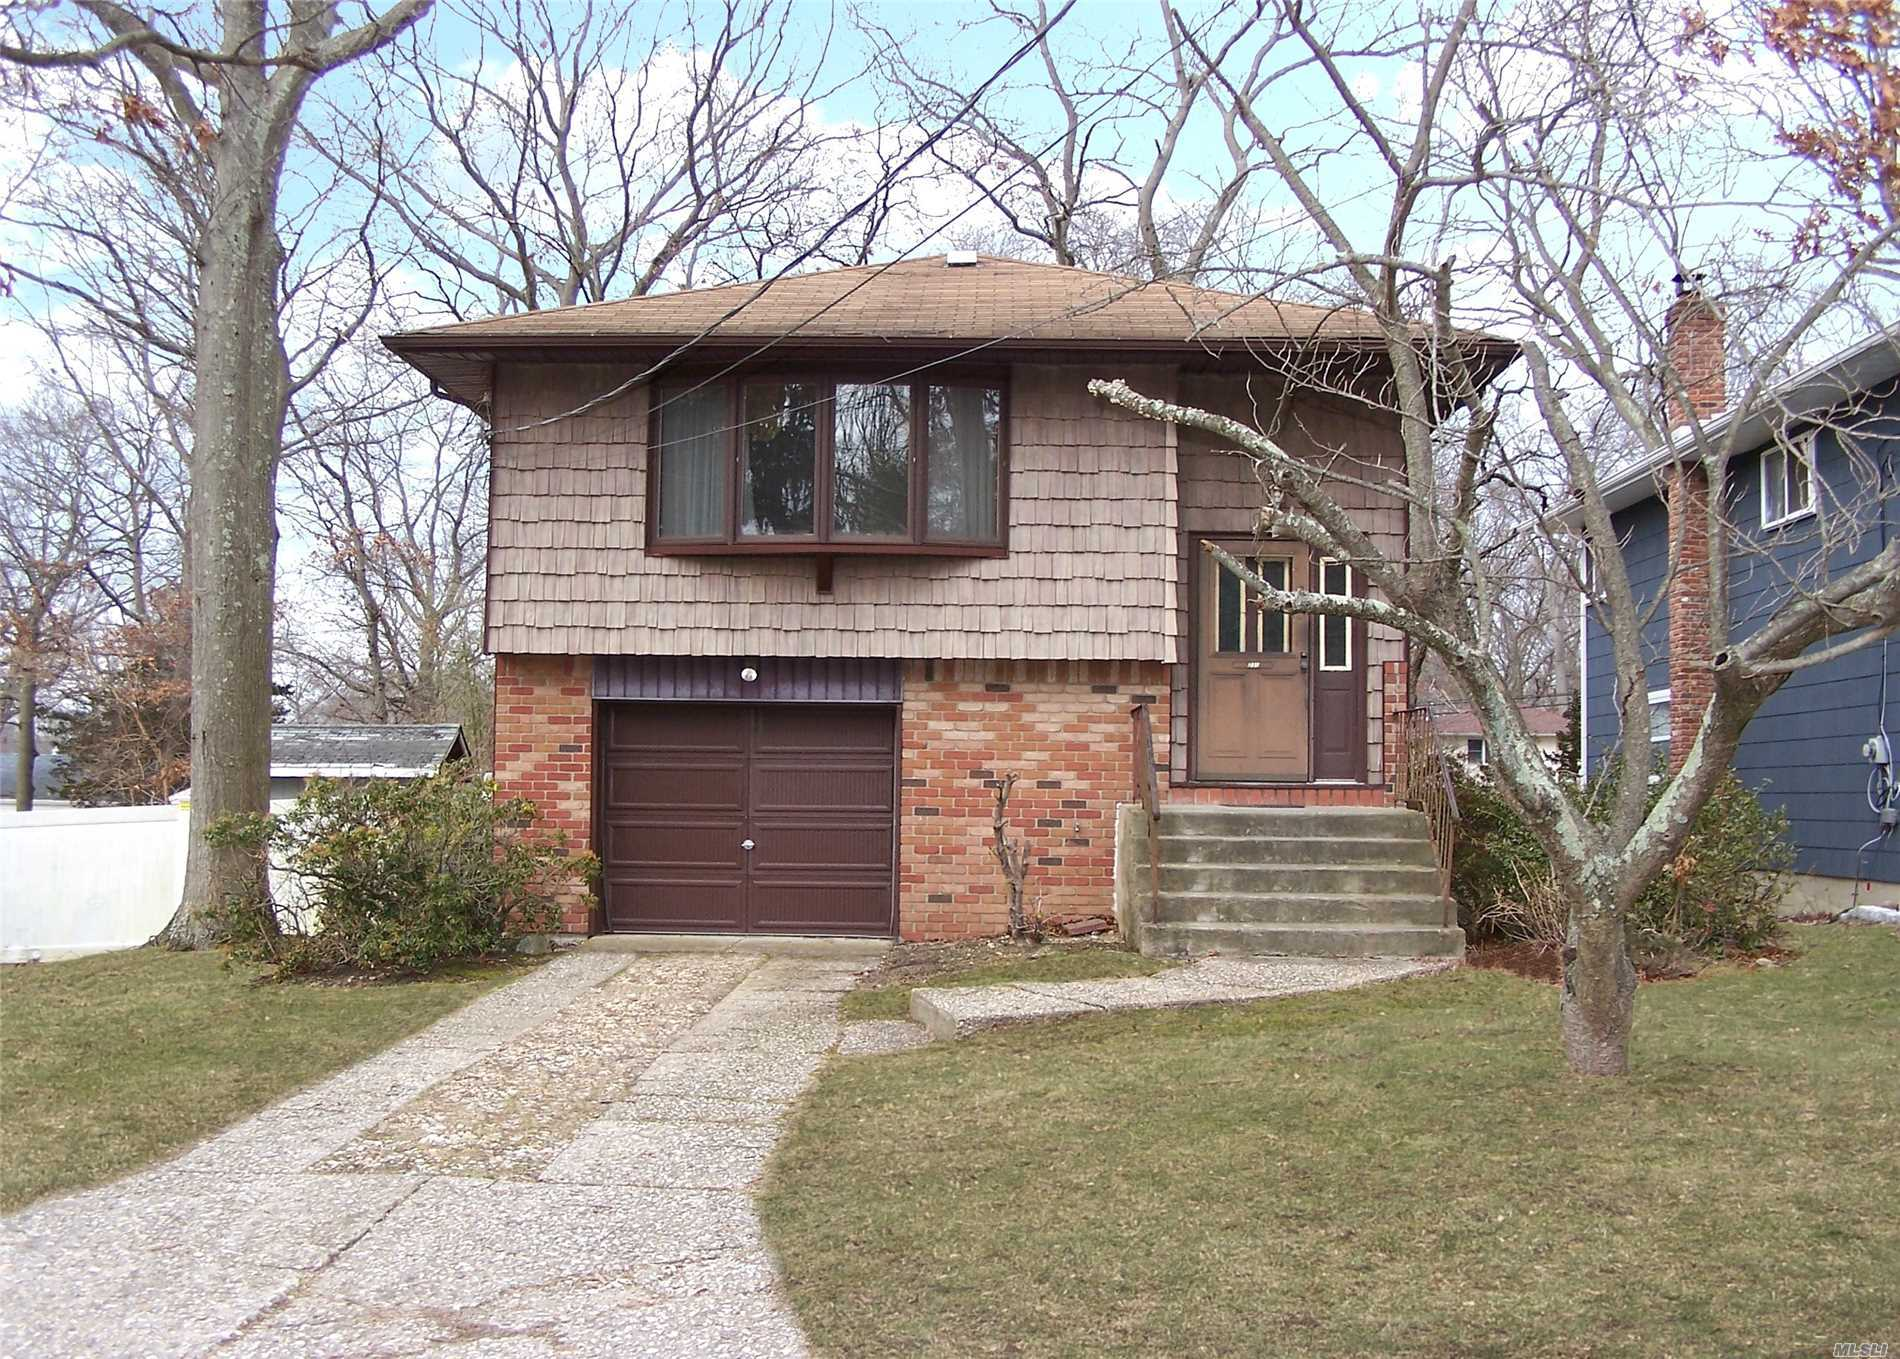 Hi Ranch In Connetquot Schools, Features 3 Bedrooms, 1 1/2 Baths, Living Rm, Dining Room, Eik, Den, Laundry Rm, Large Deck And Attached Garage.